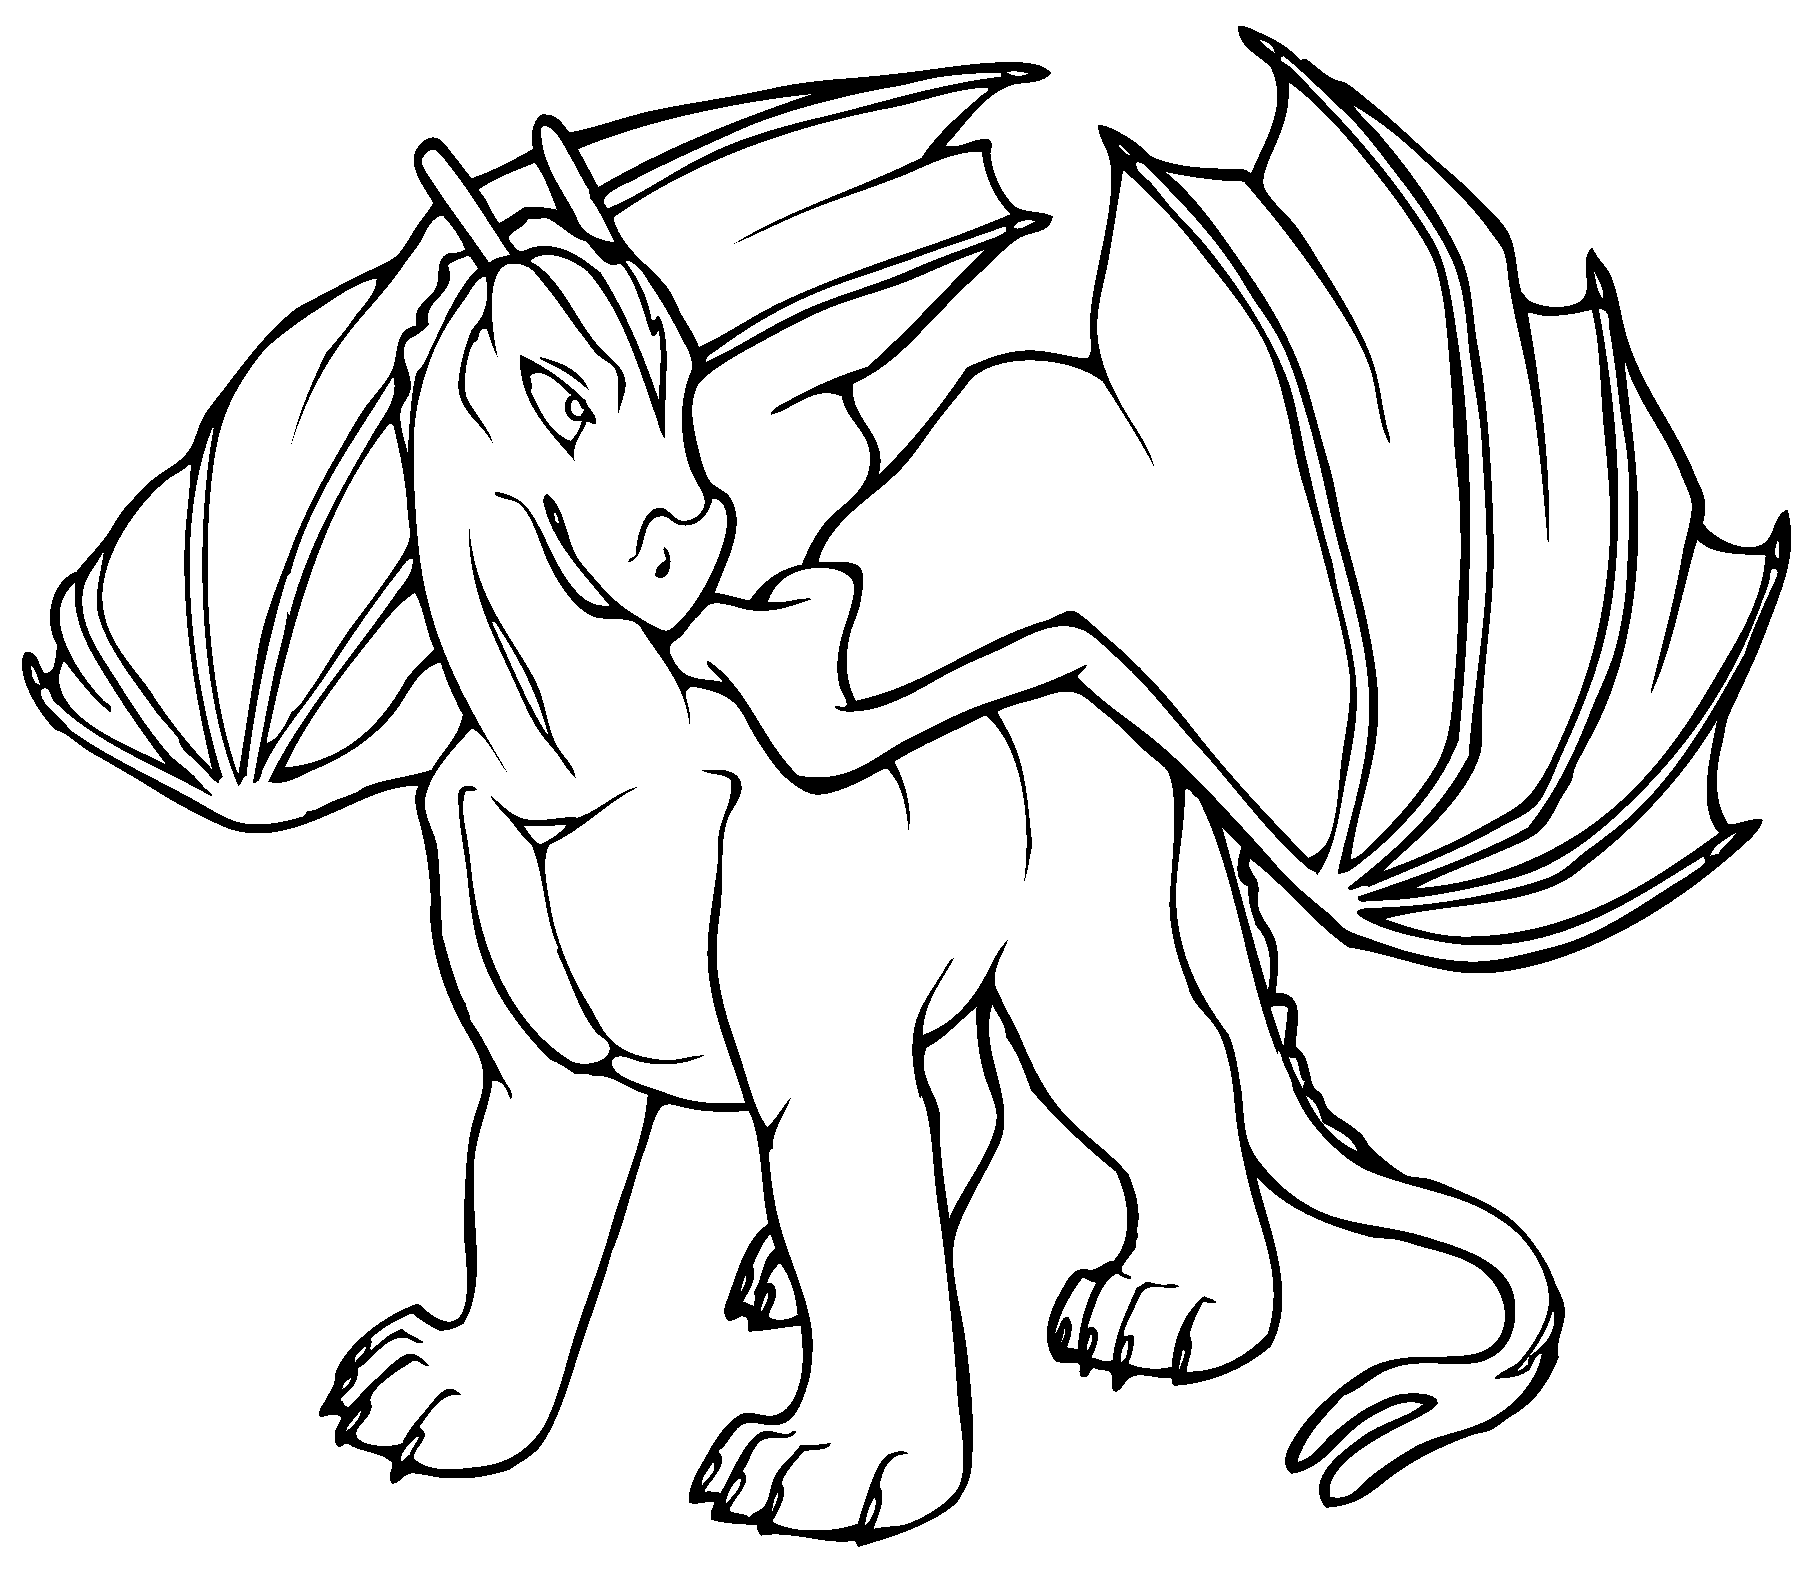 dragon images to color dragon coloring pages for adults to download and print for images color dragon to